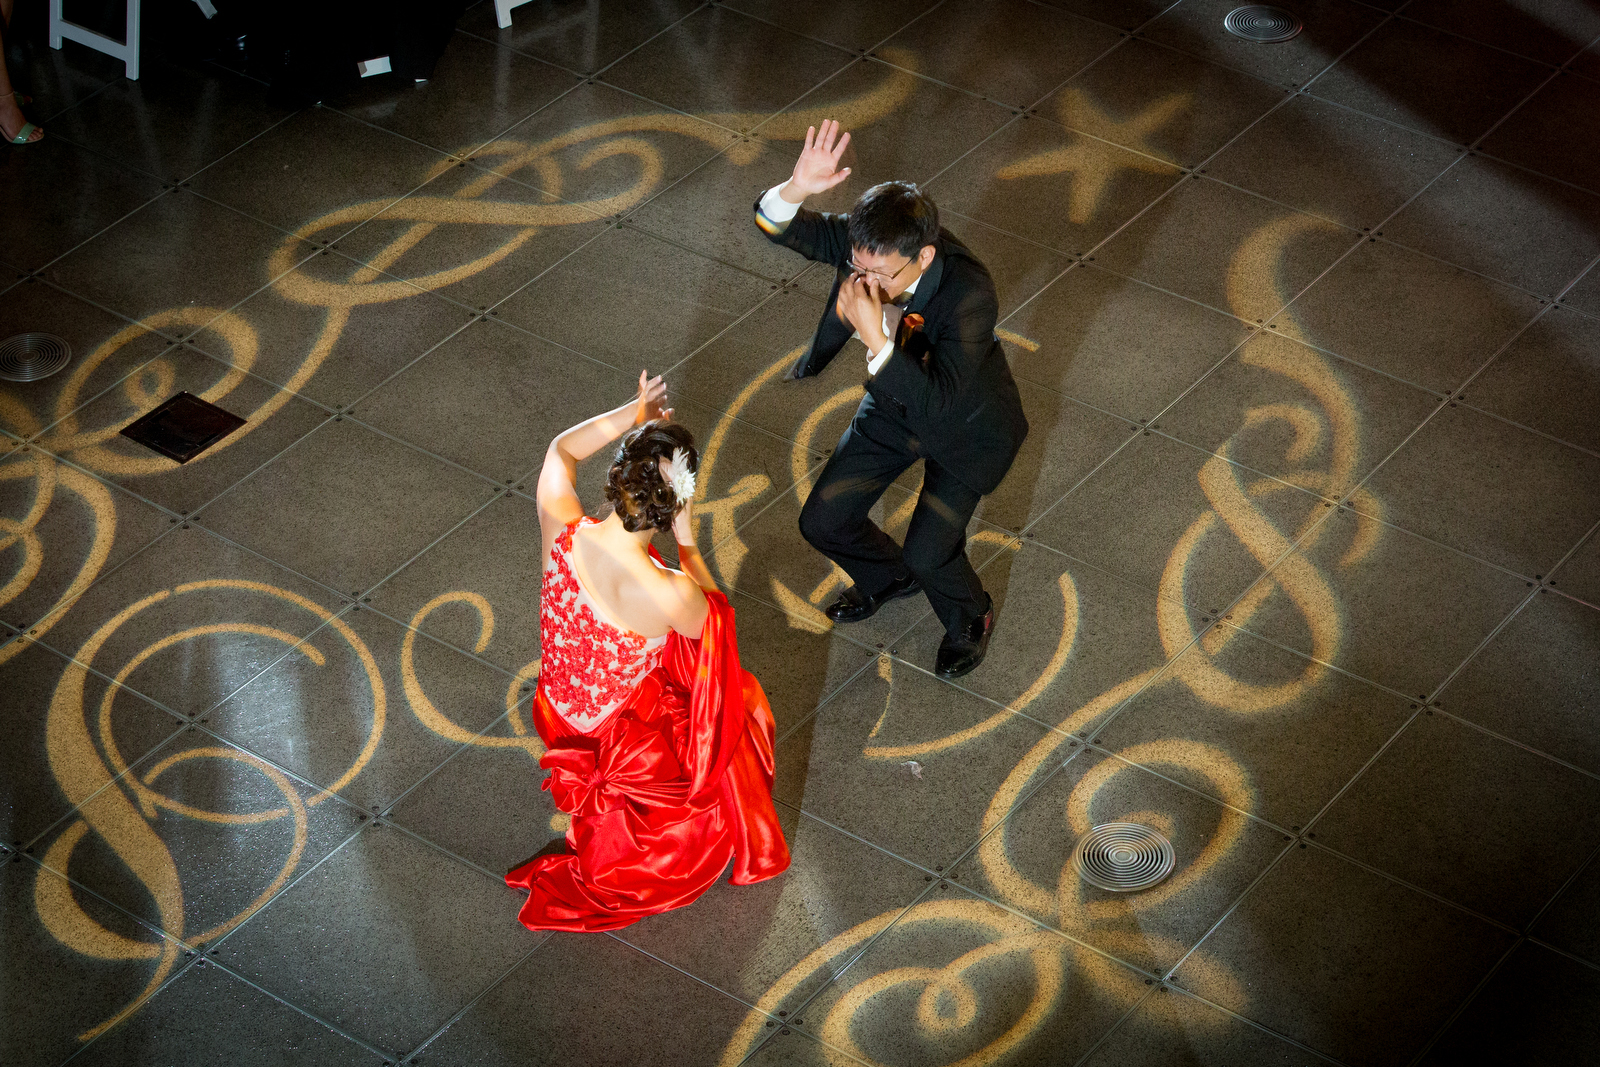 The bride and her father dance during the wedding reception at the Seattle Aquarium. (Wedding Photography by Scott Eklund/Red Box Pictures)